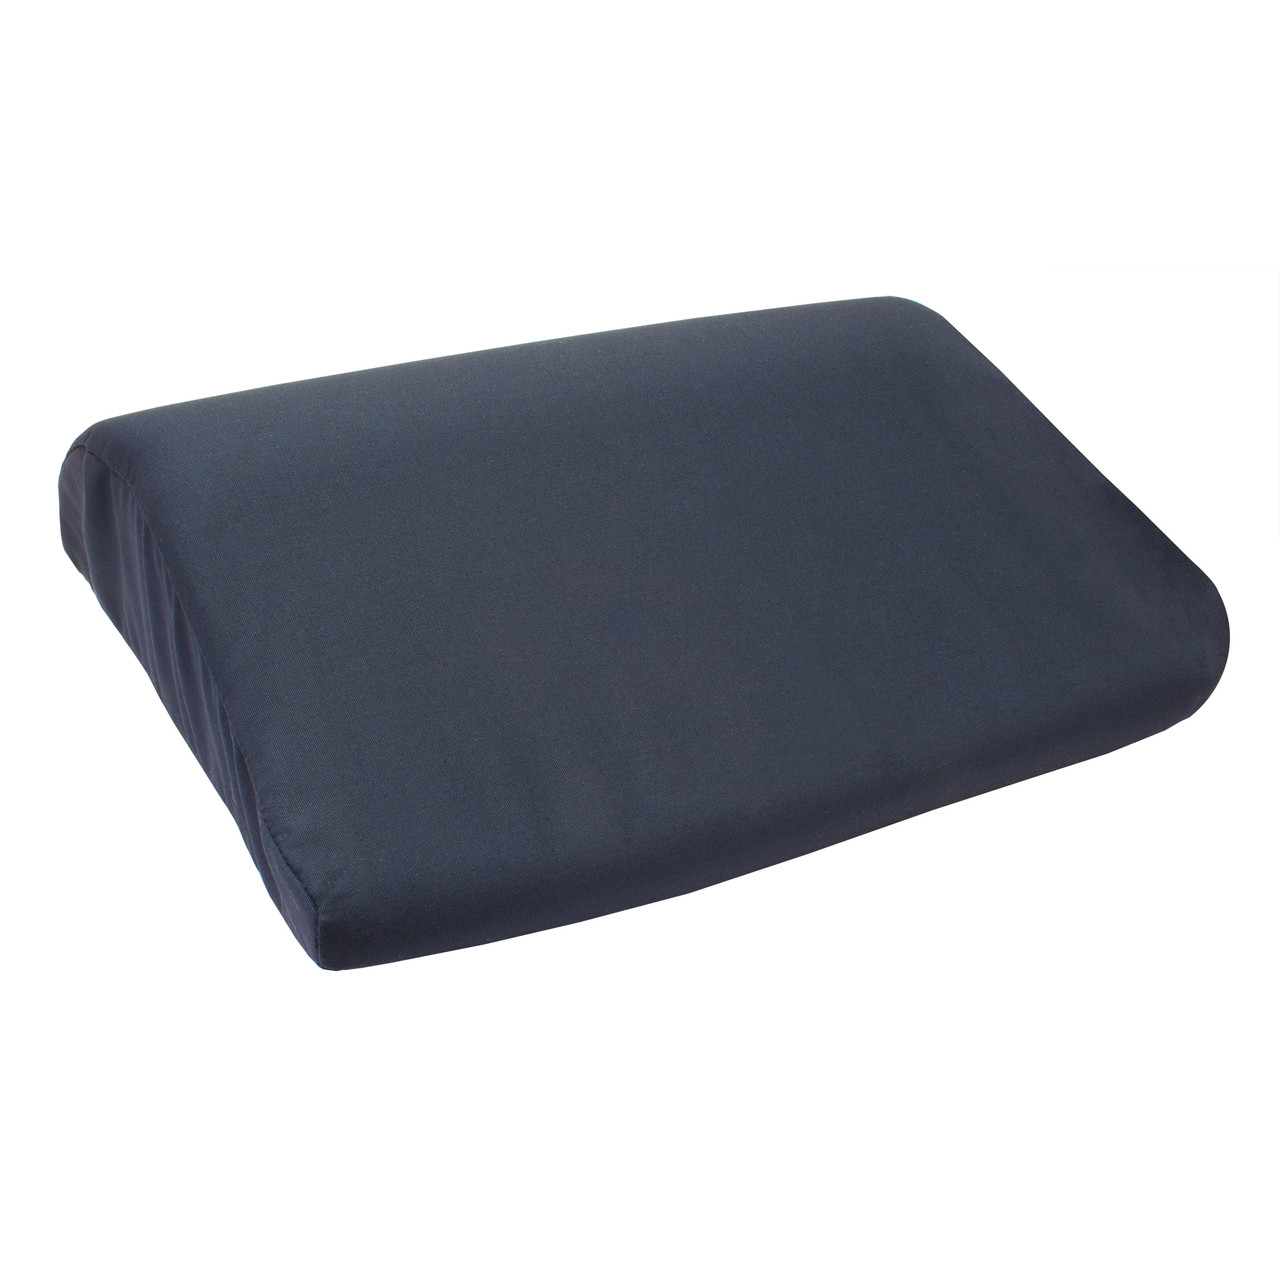 posture support seat cushion warren platner chair lumbar back pillow for lower